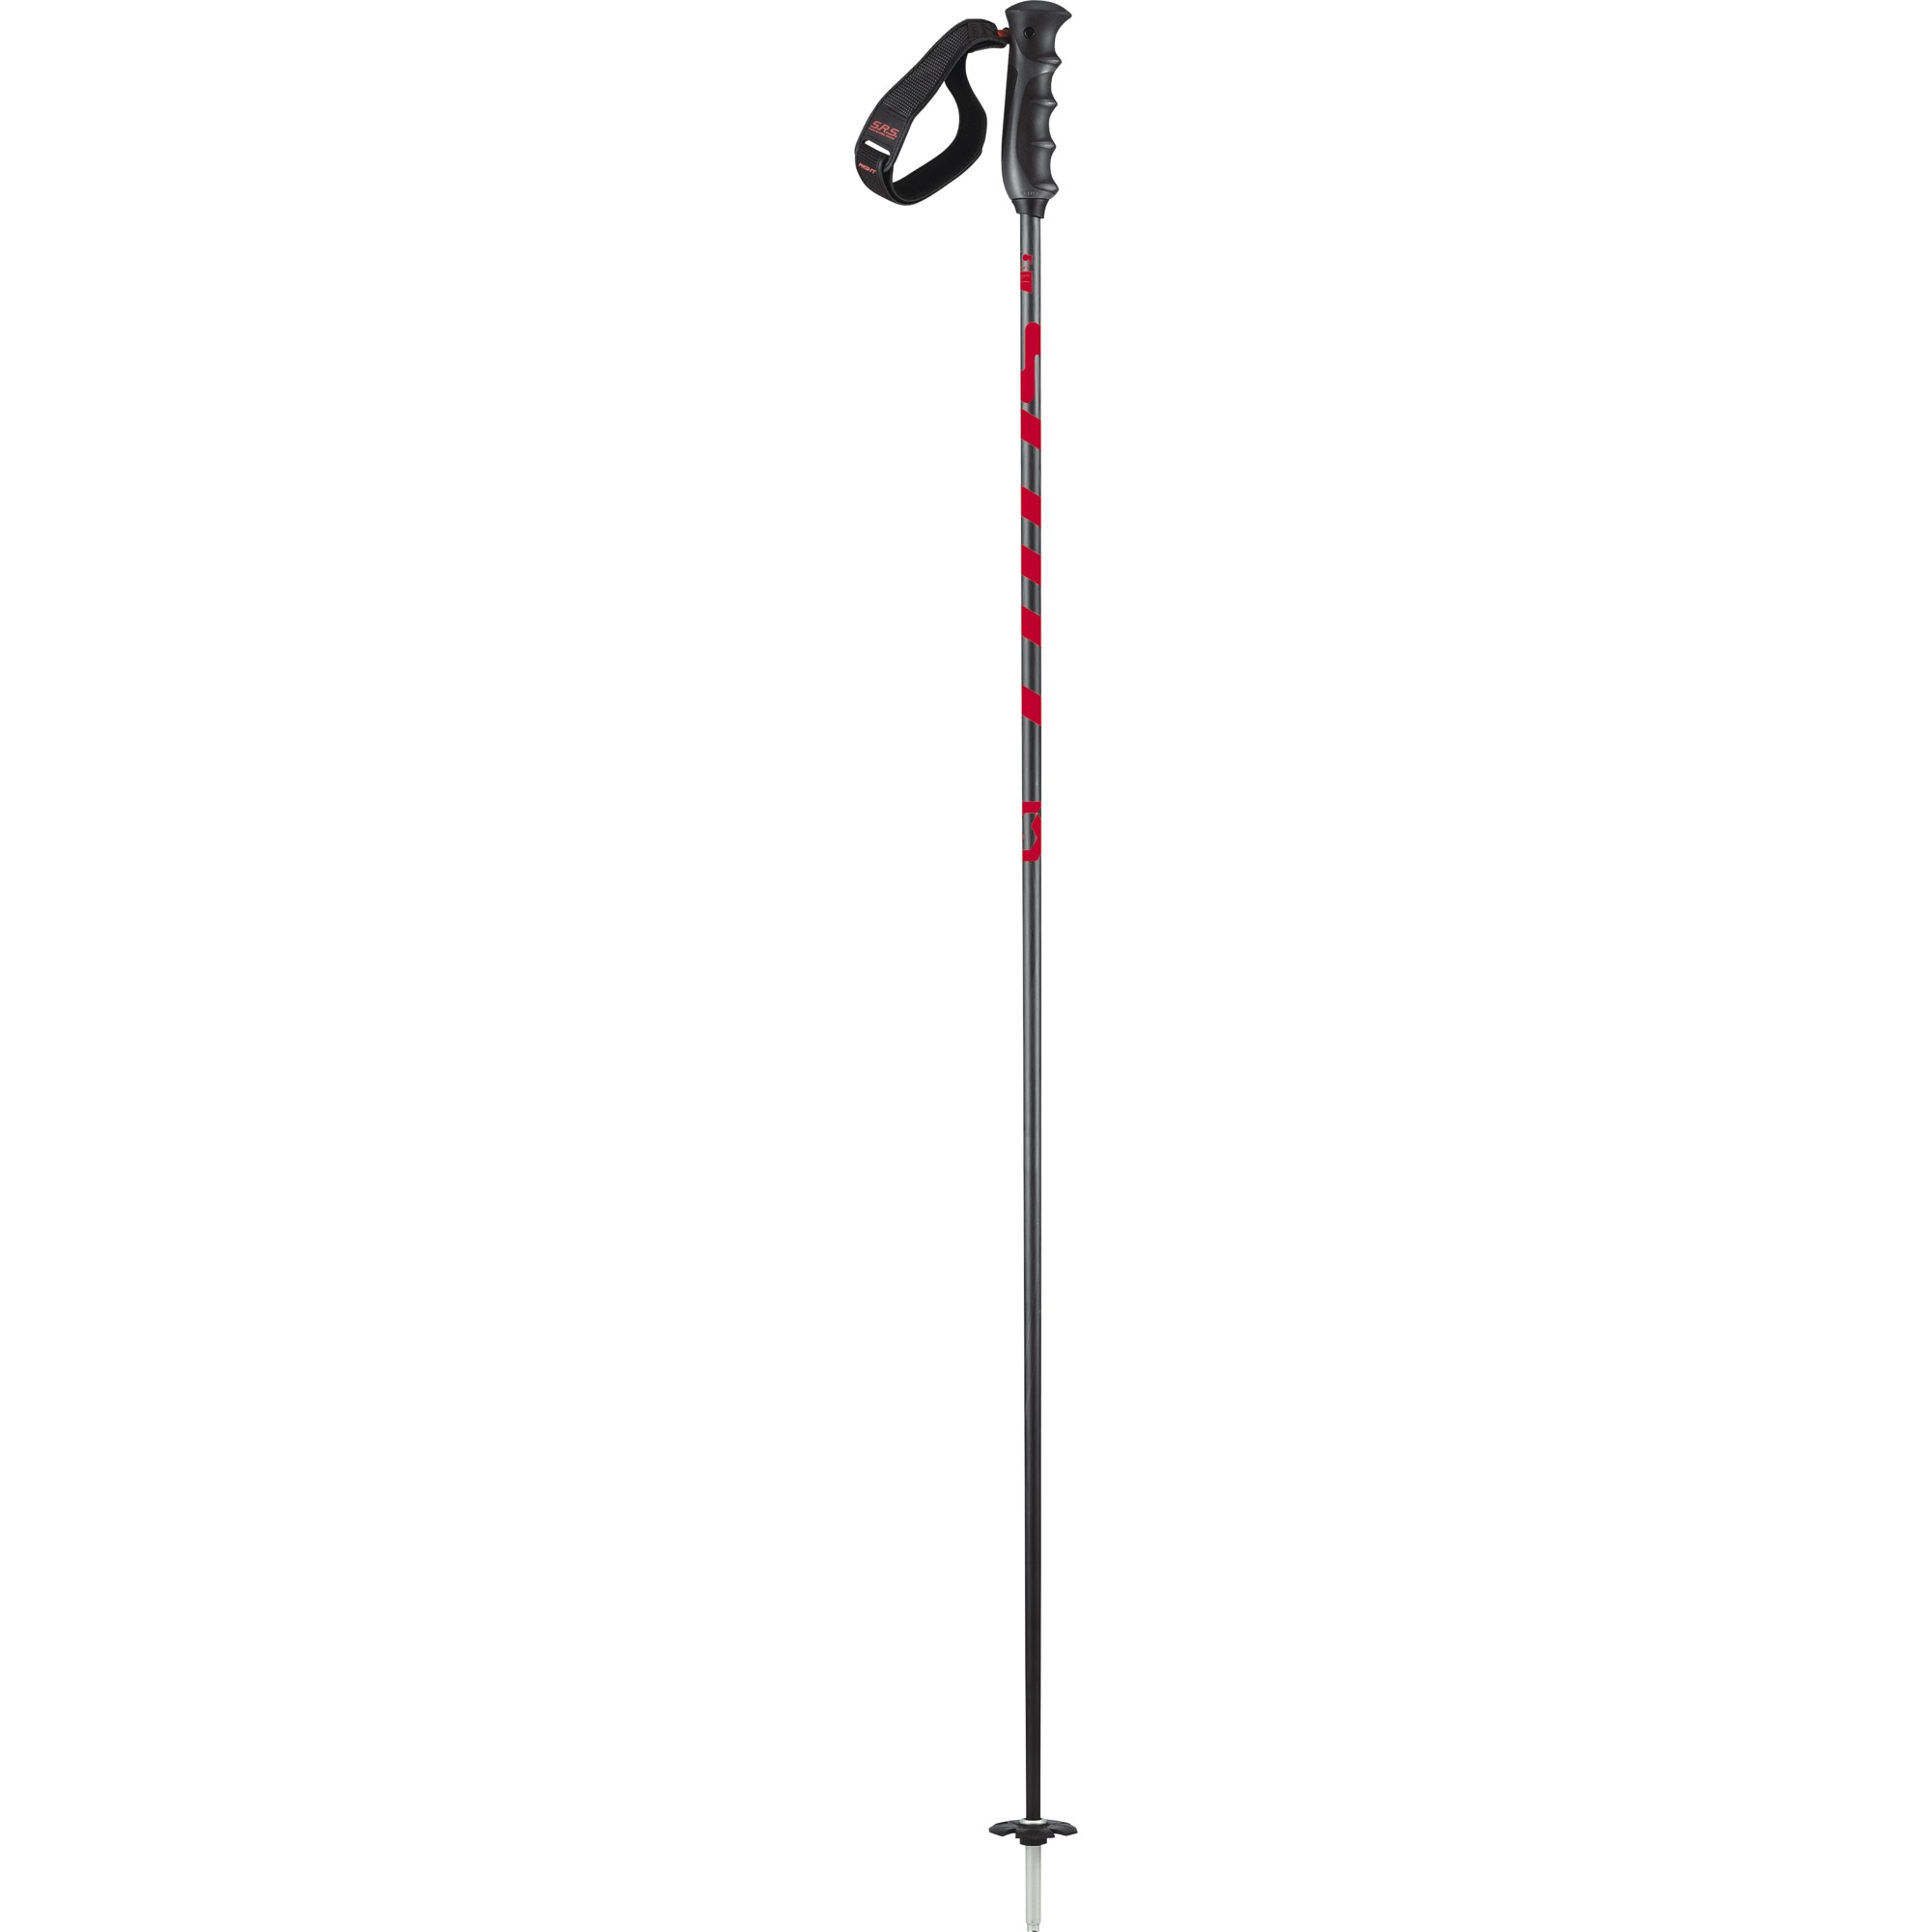 SCOTT Zeo 13 Ski Pole